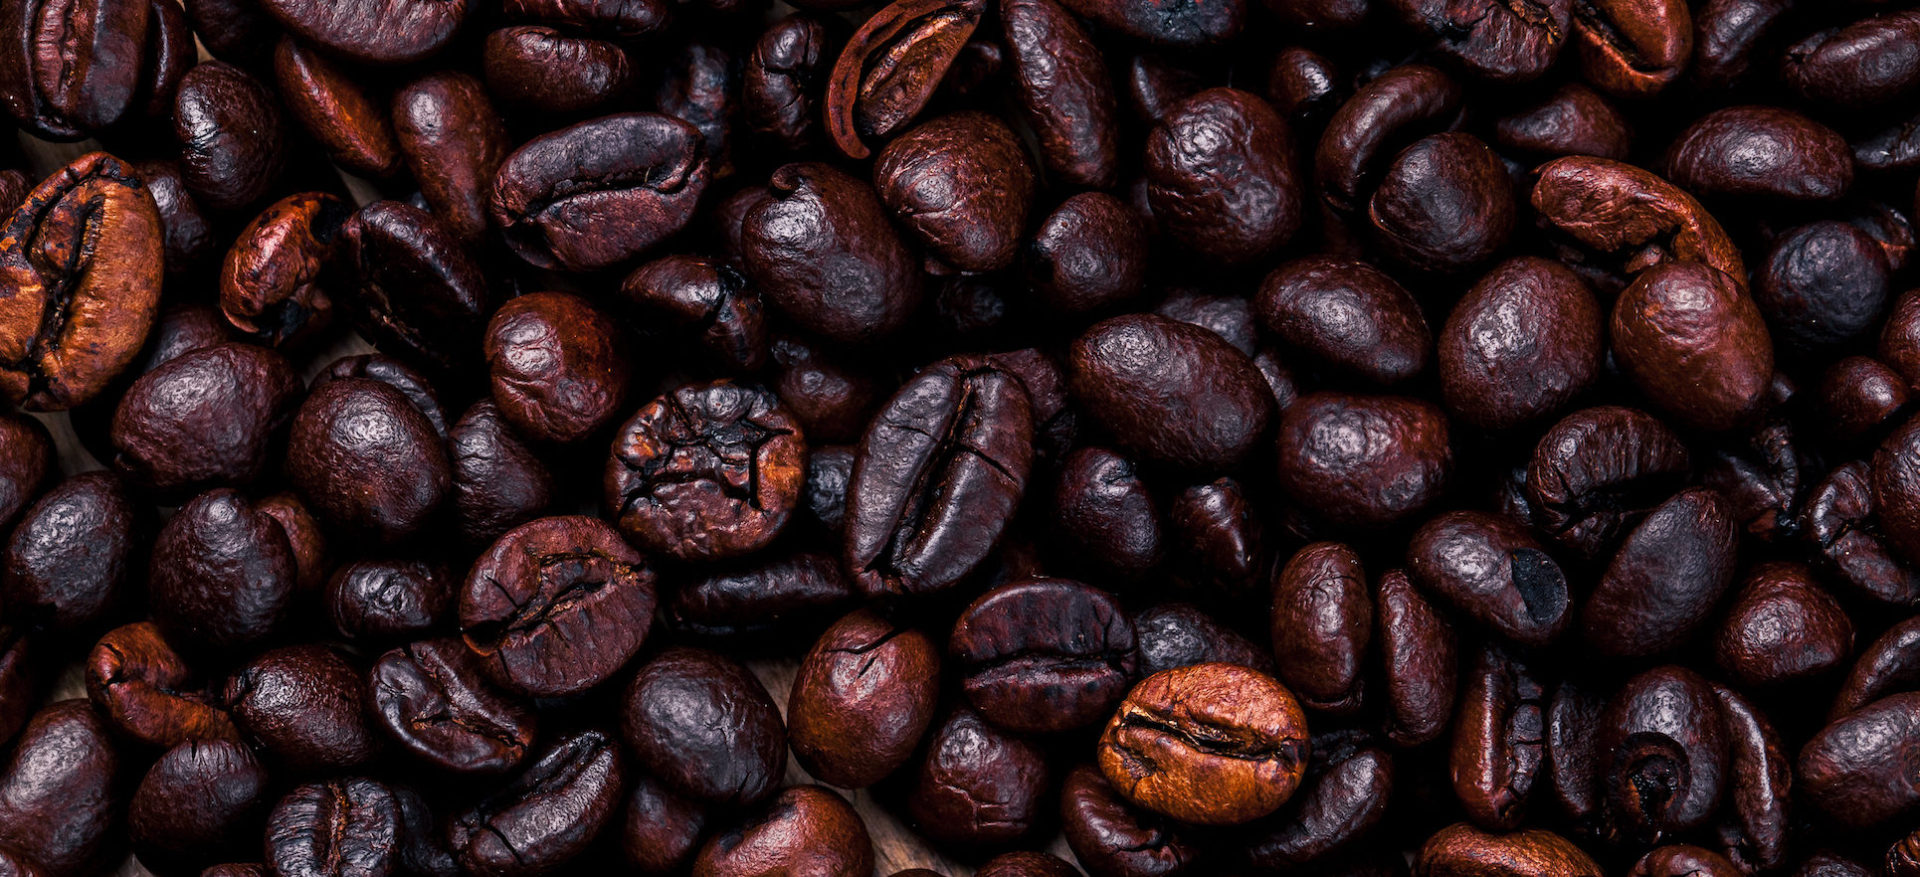 Trusted suppliers – Workshop Coffee